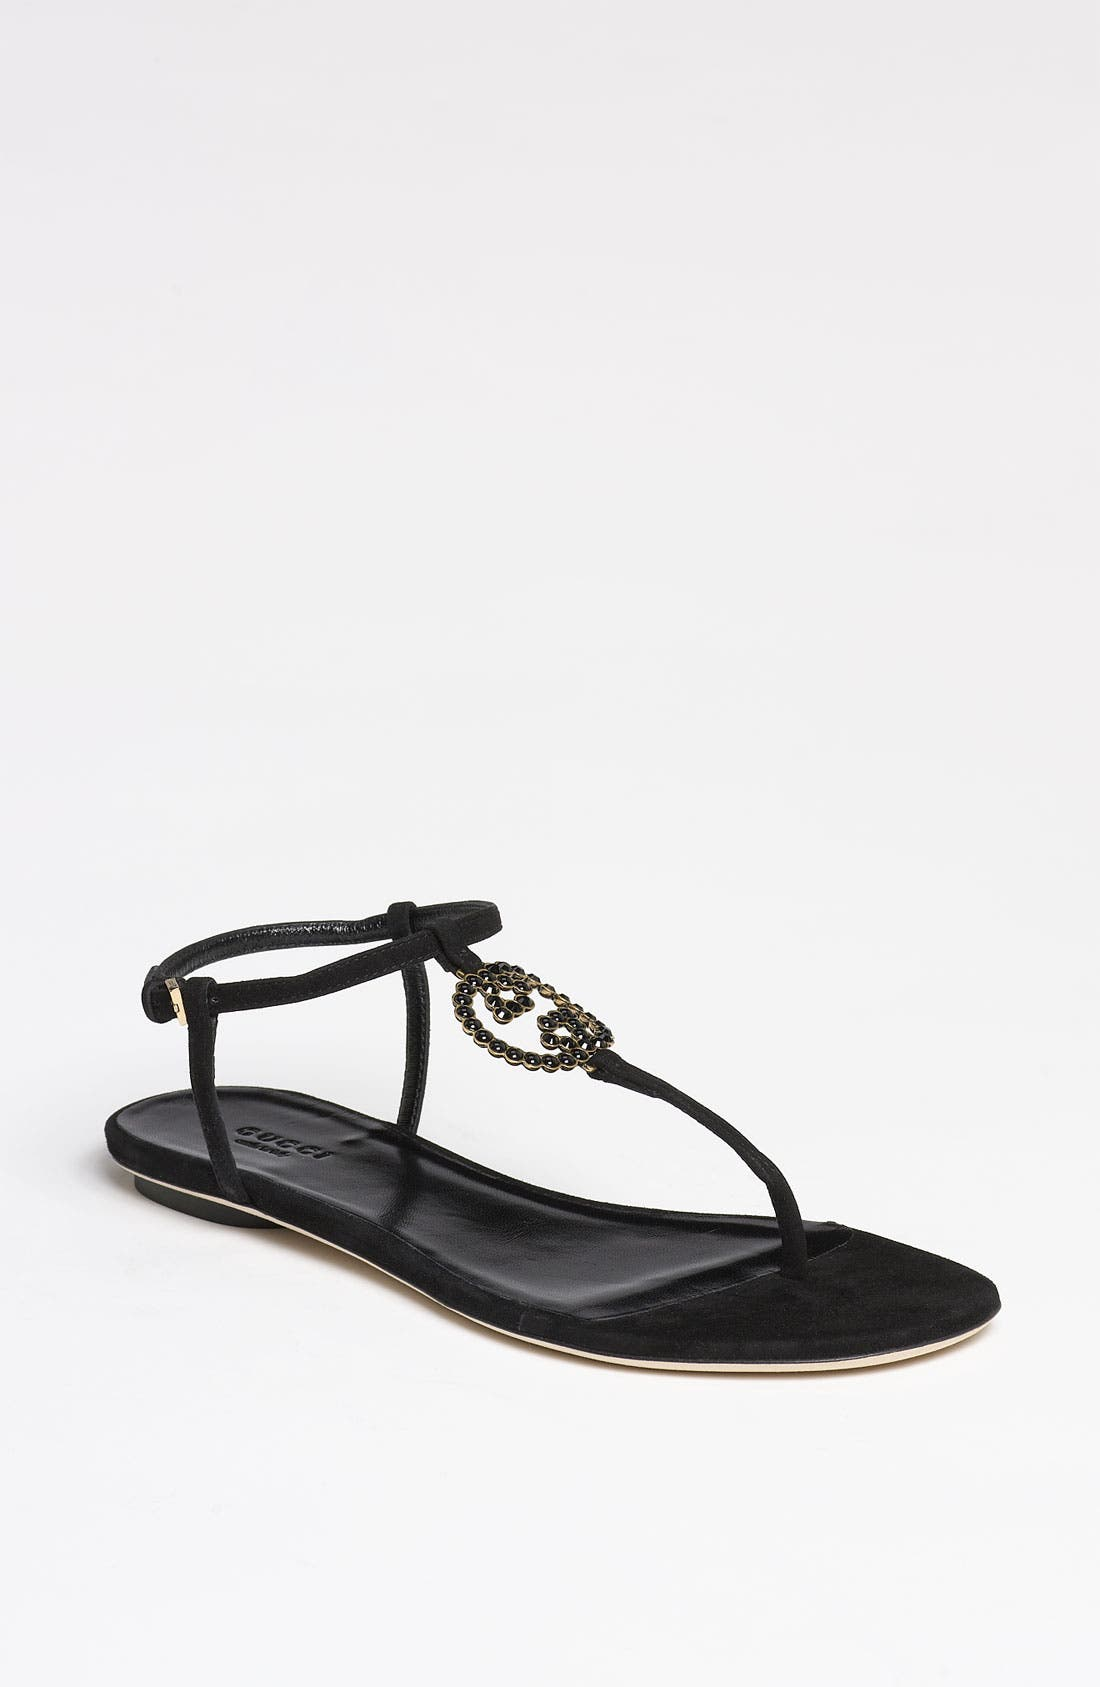 Alternate Image 1 Selected - Gucci 'Katlin' Sandal